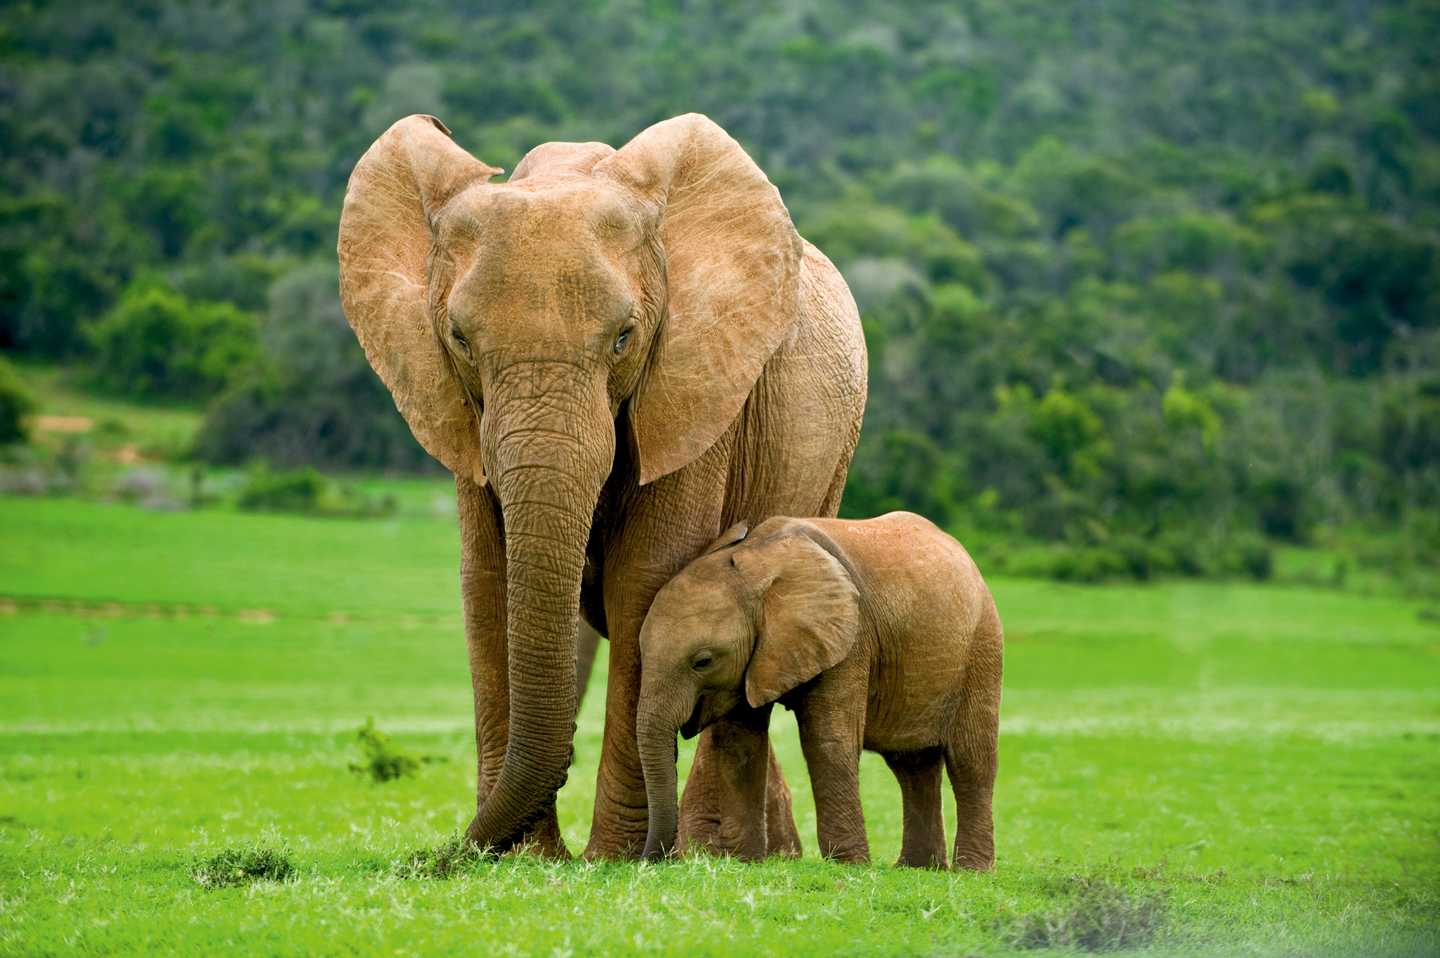 An elephant and her calf in the park